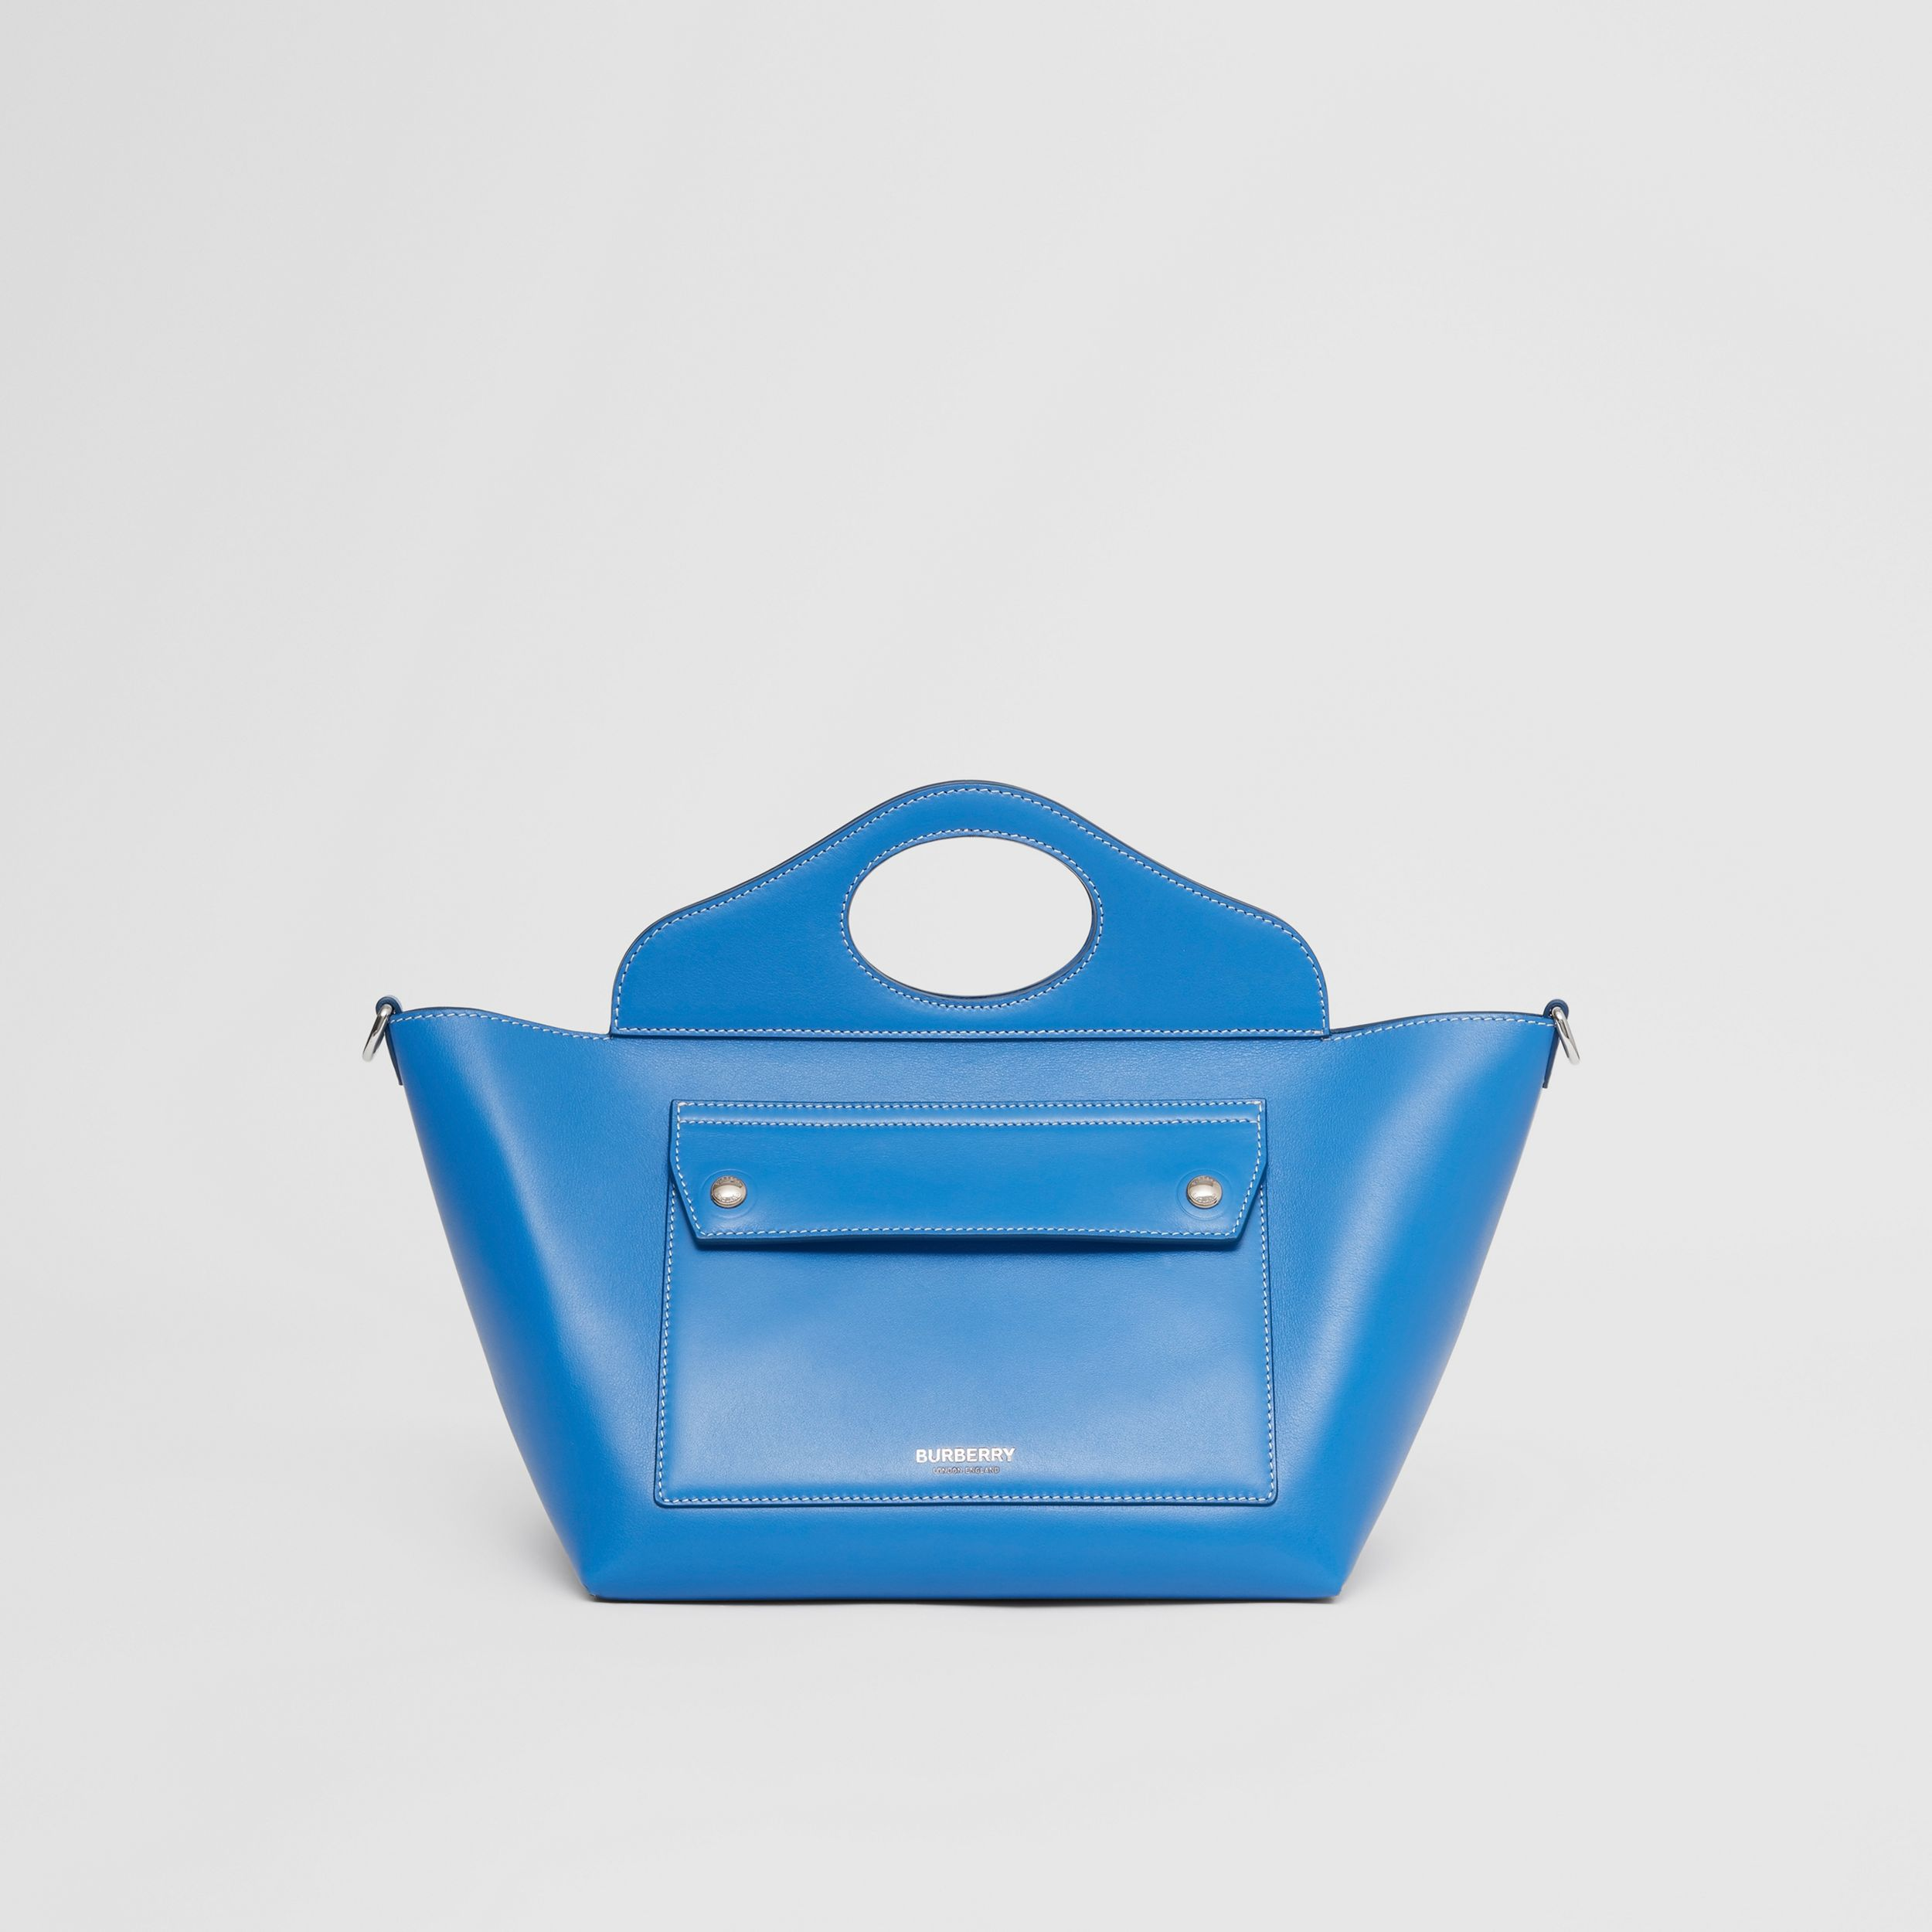 Mini Leather Soft Pocket Tote in Warm Royal Blue - Women | Burberry - 1